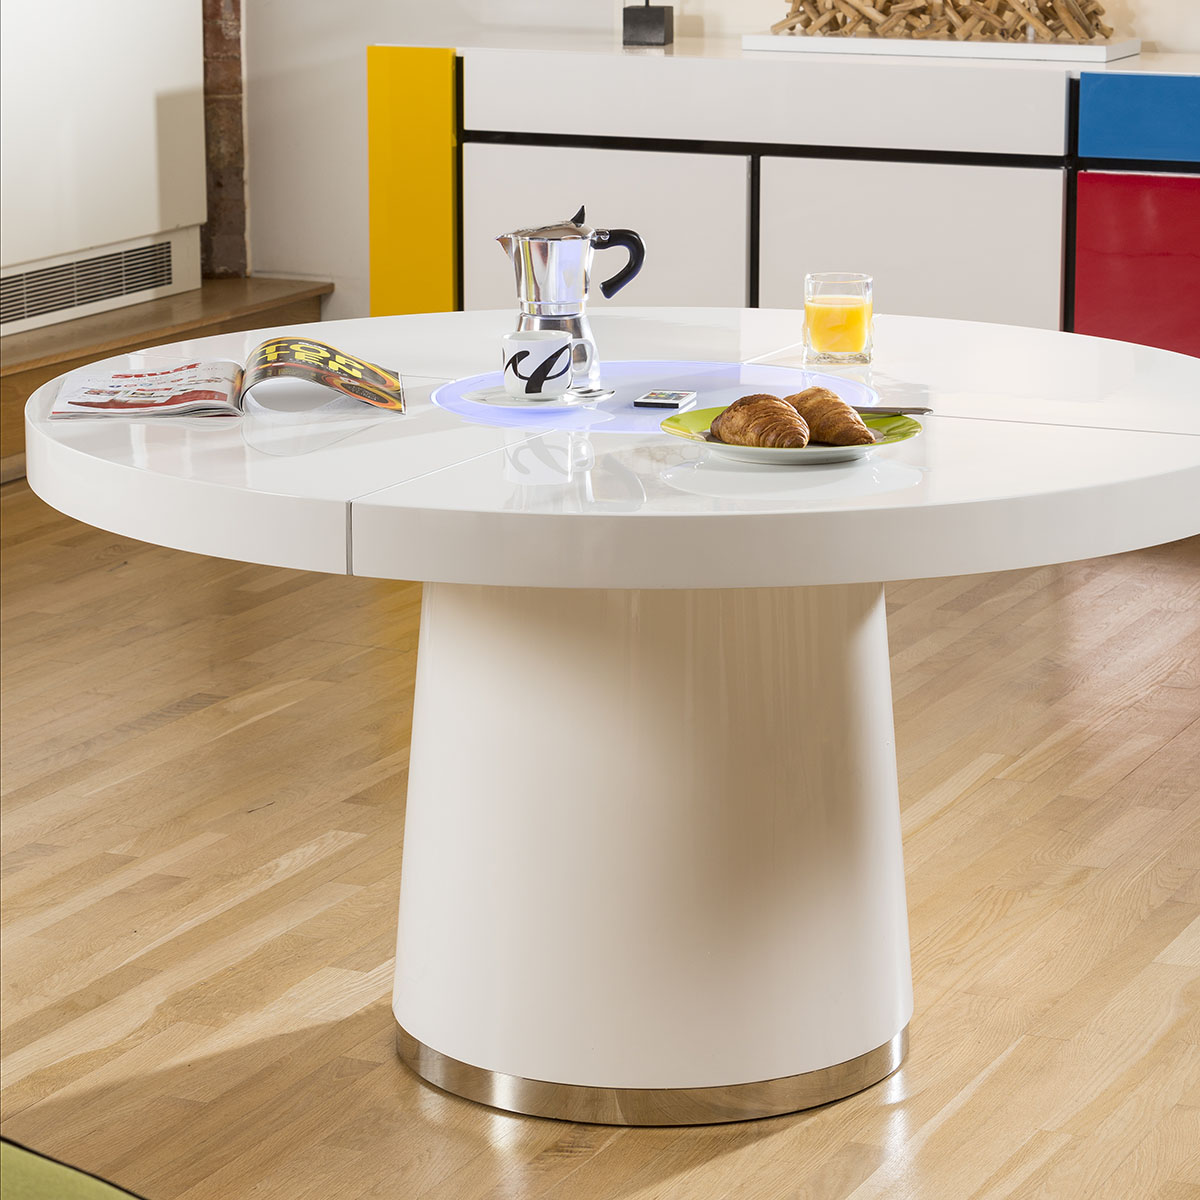 Large Round White Gloss Dining Table Glass lazy susan LED  : 850T14HB52MR1 from www.ebay.co.uk size 1200 x 1200 jpeg 213kB